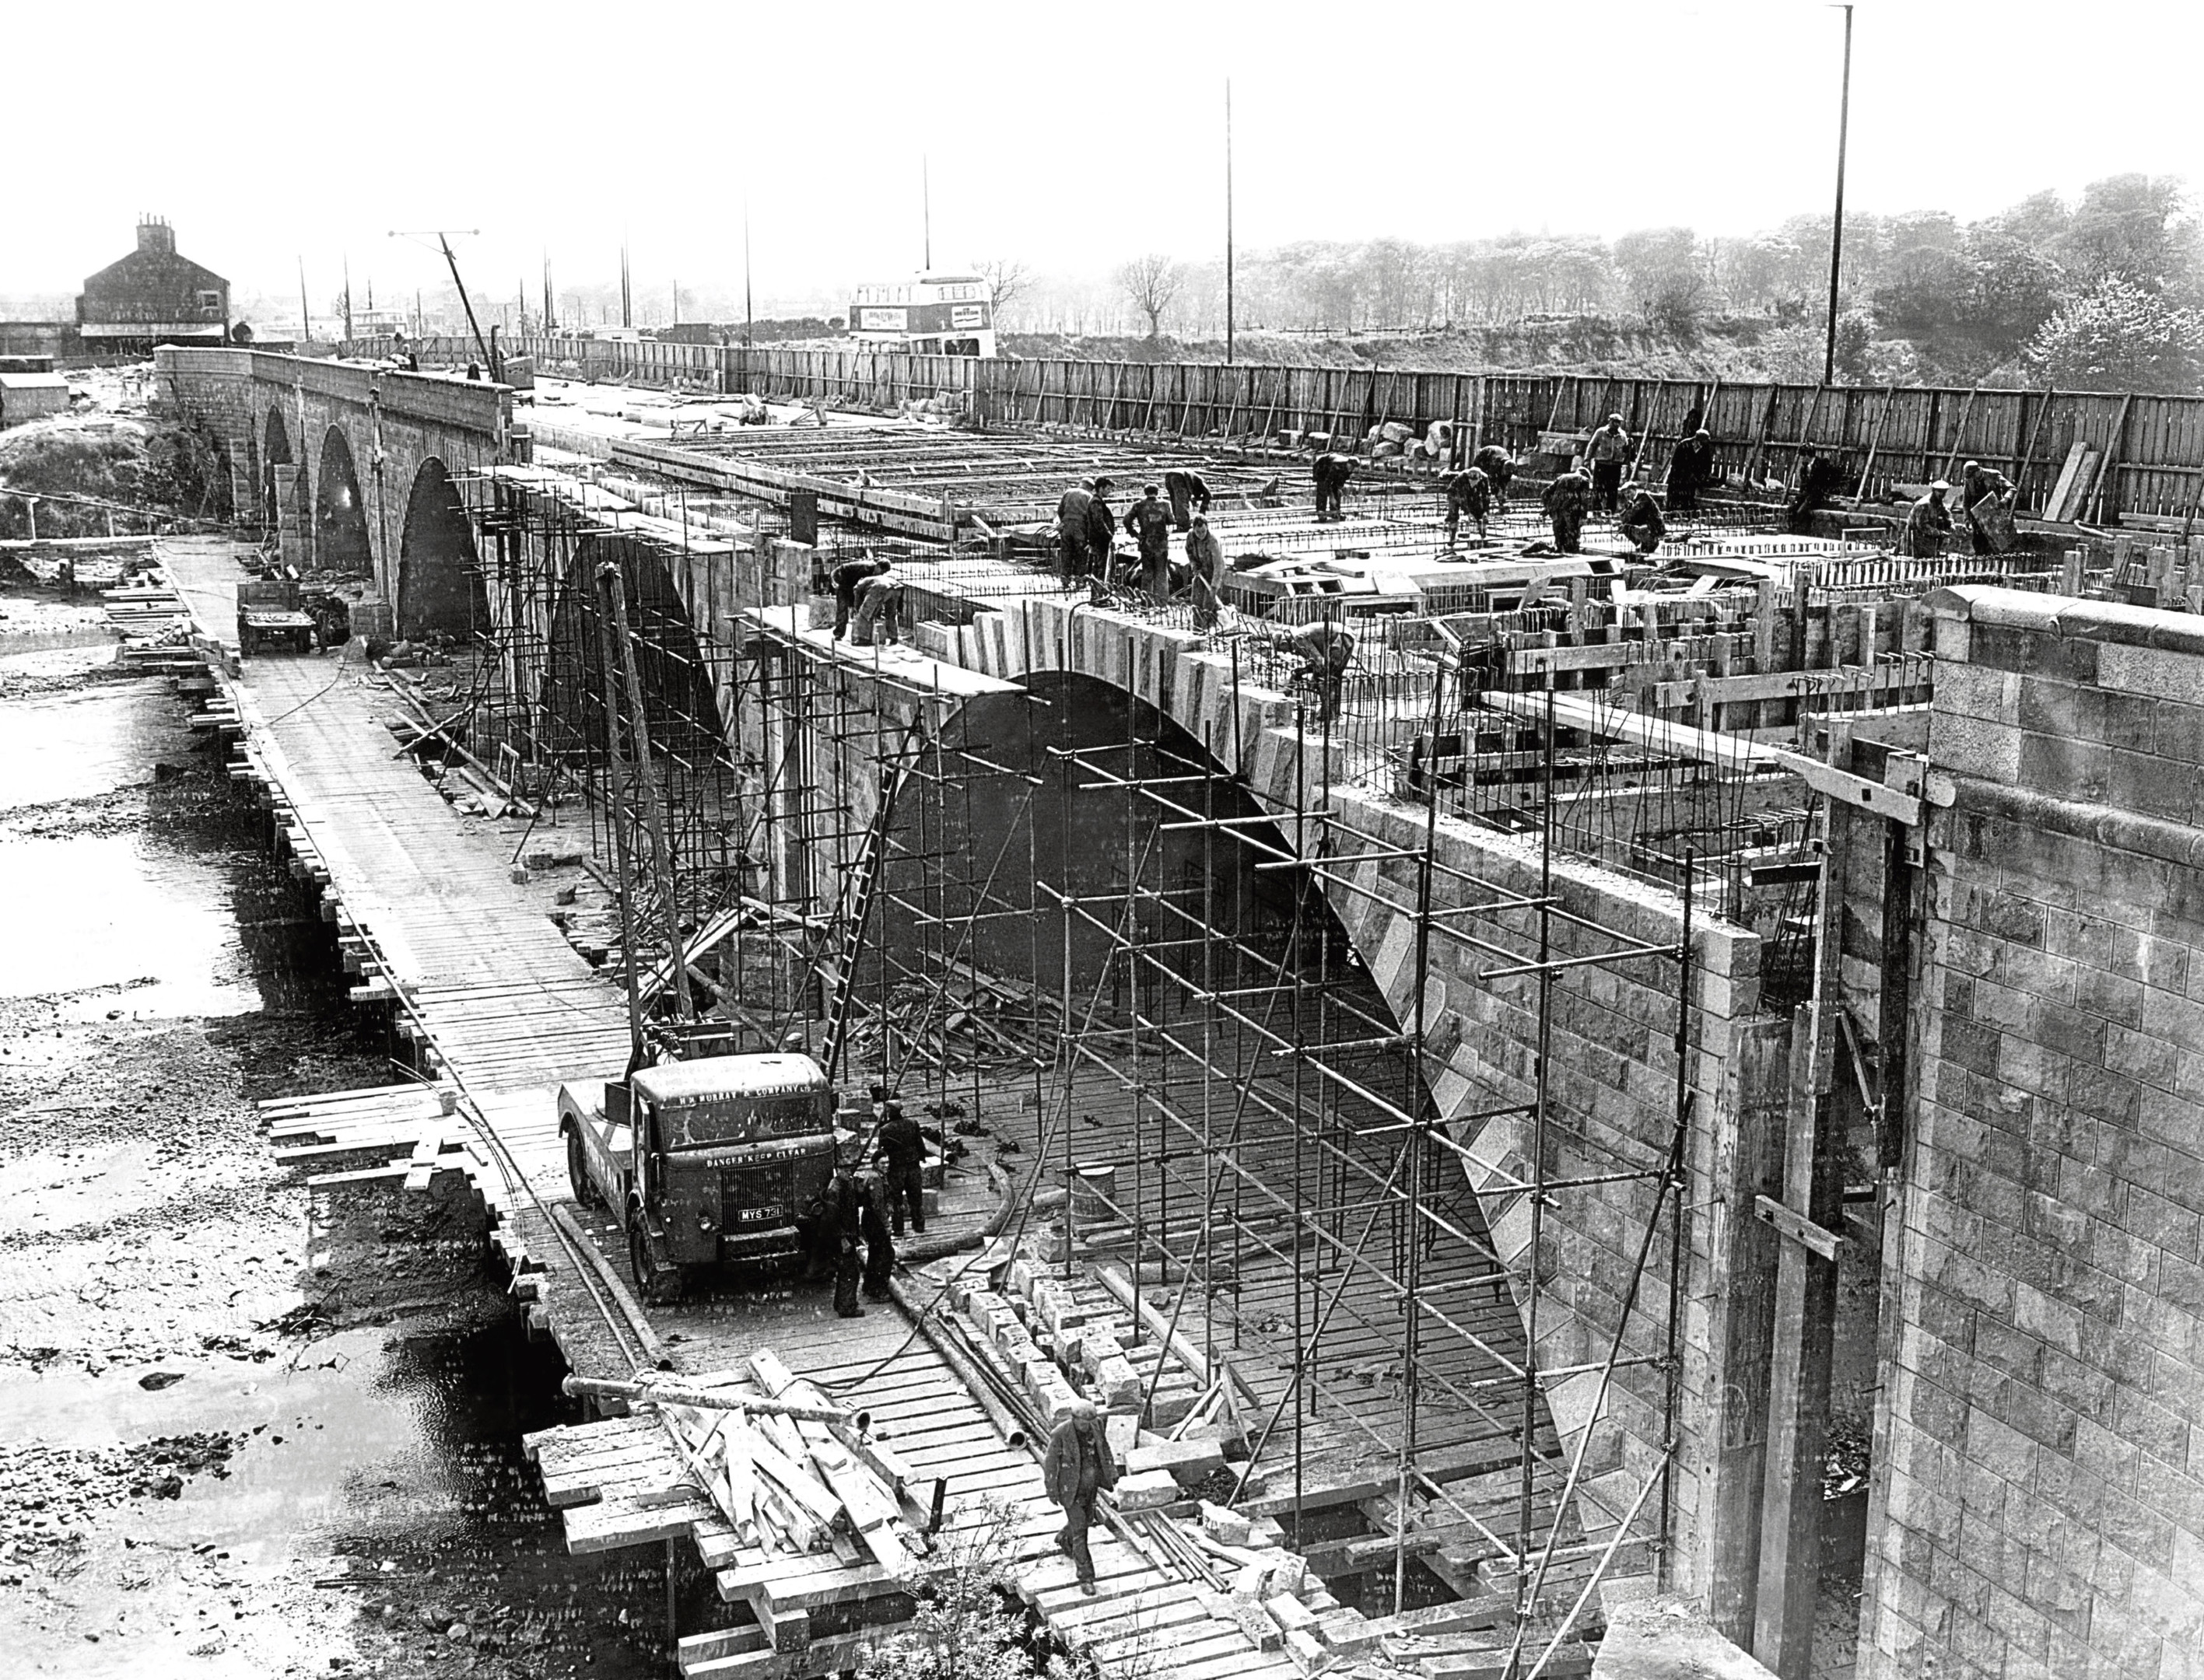 1958: Widening work on the Bridge of Don well under way in 1958.